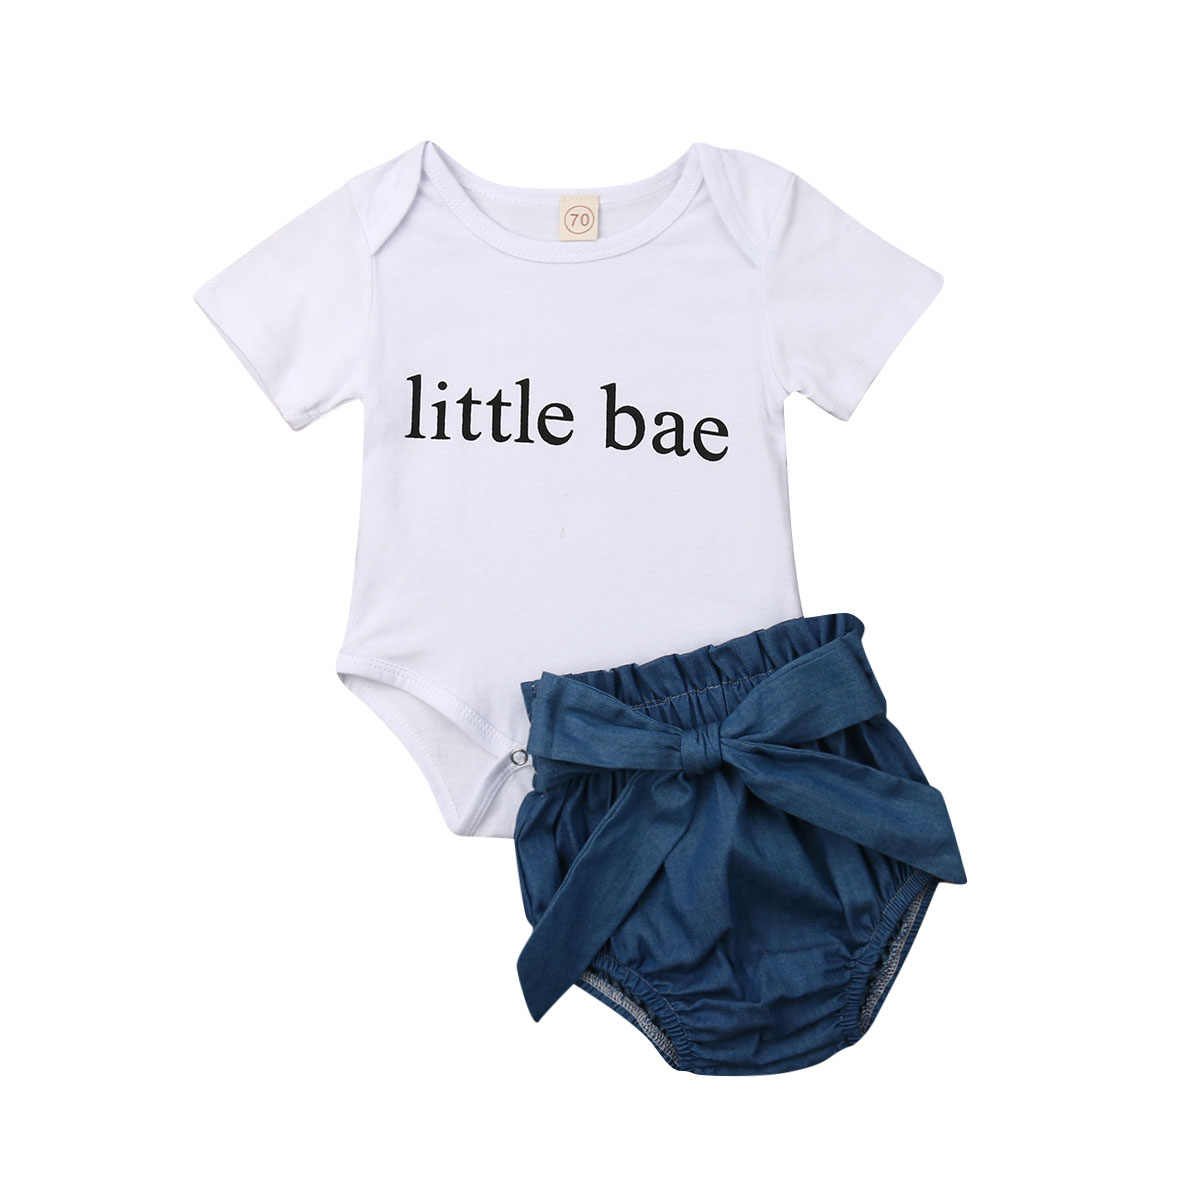 Newborn Infant Baby Girl Clothes Short Sleeves Little Bae Bodysuit Denim Shorts Casual Outfit